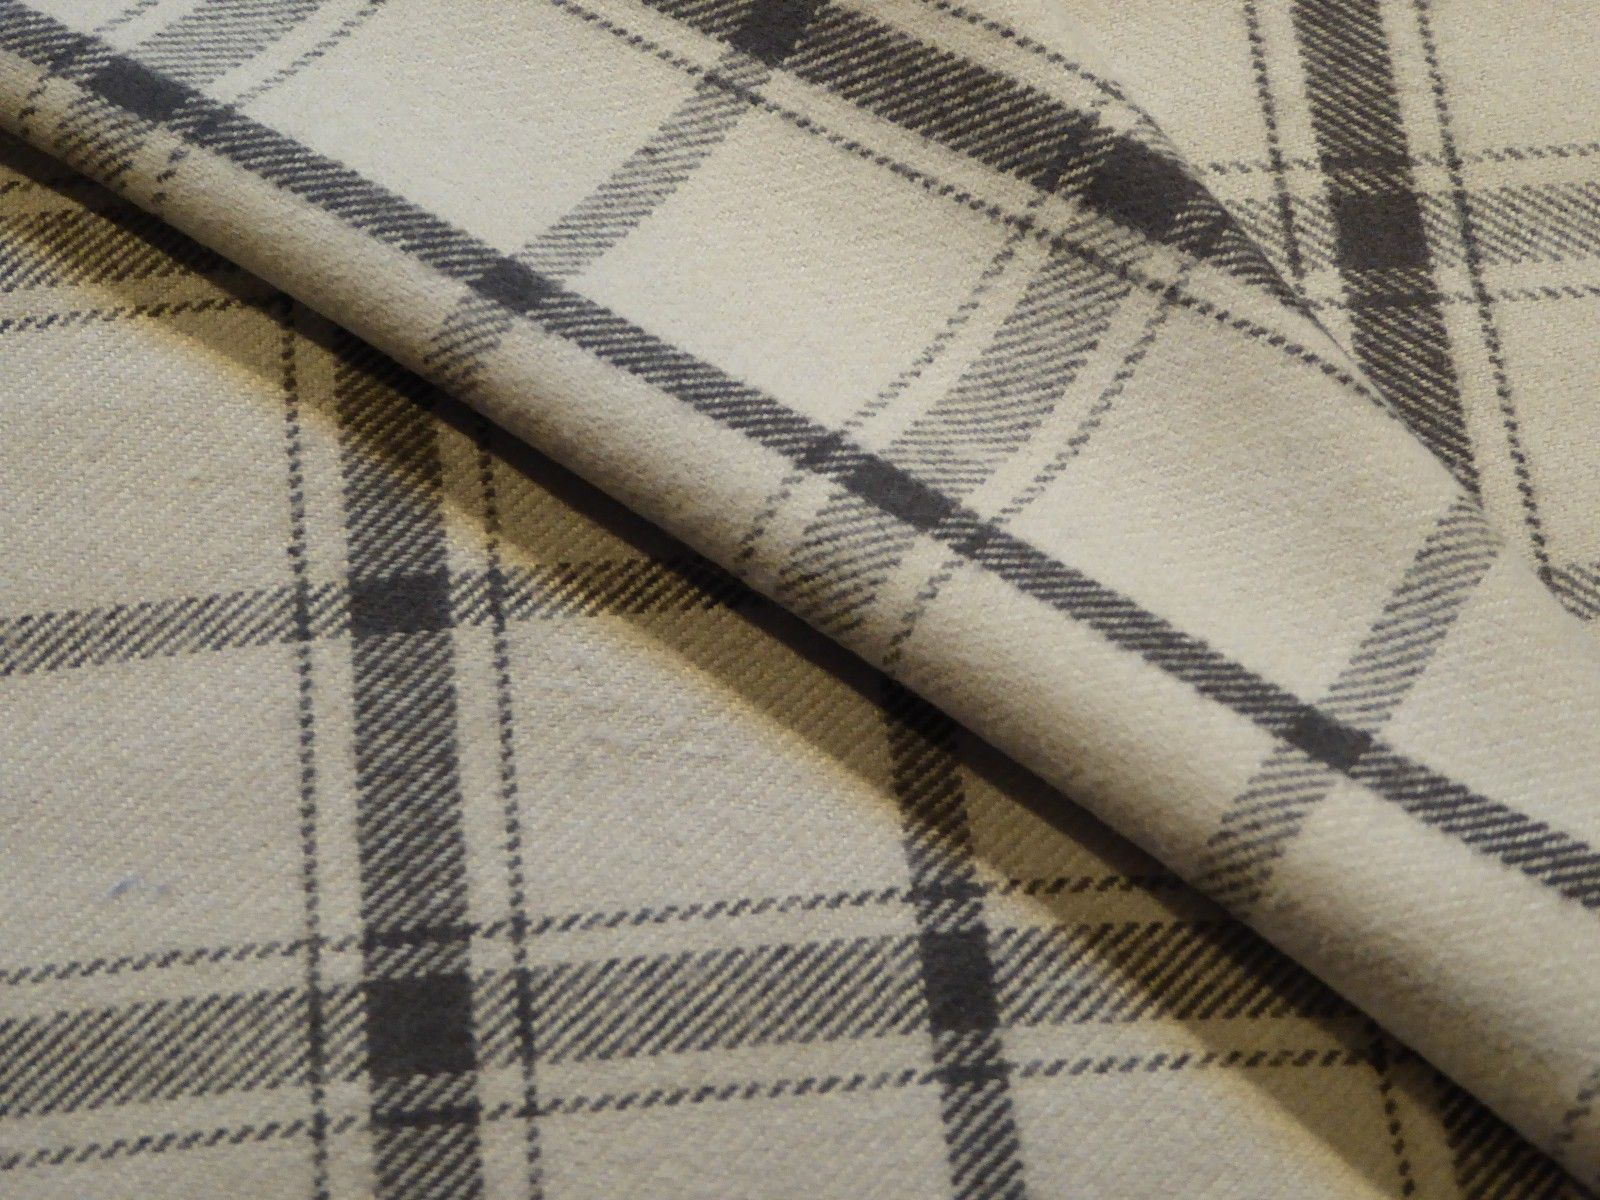 Plaid Cotton Brushed Flannel Light and Dark Gray Understated VERY SOFT